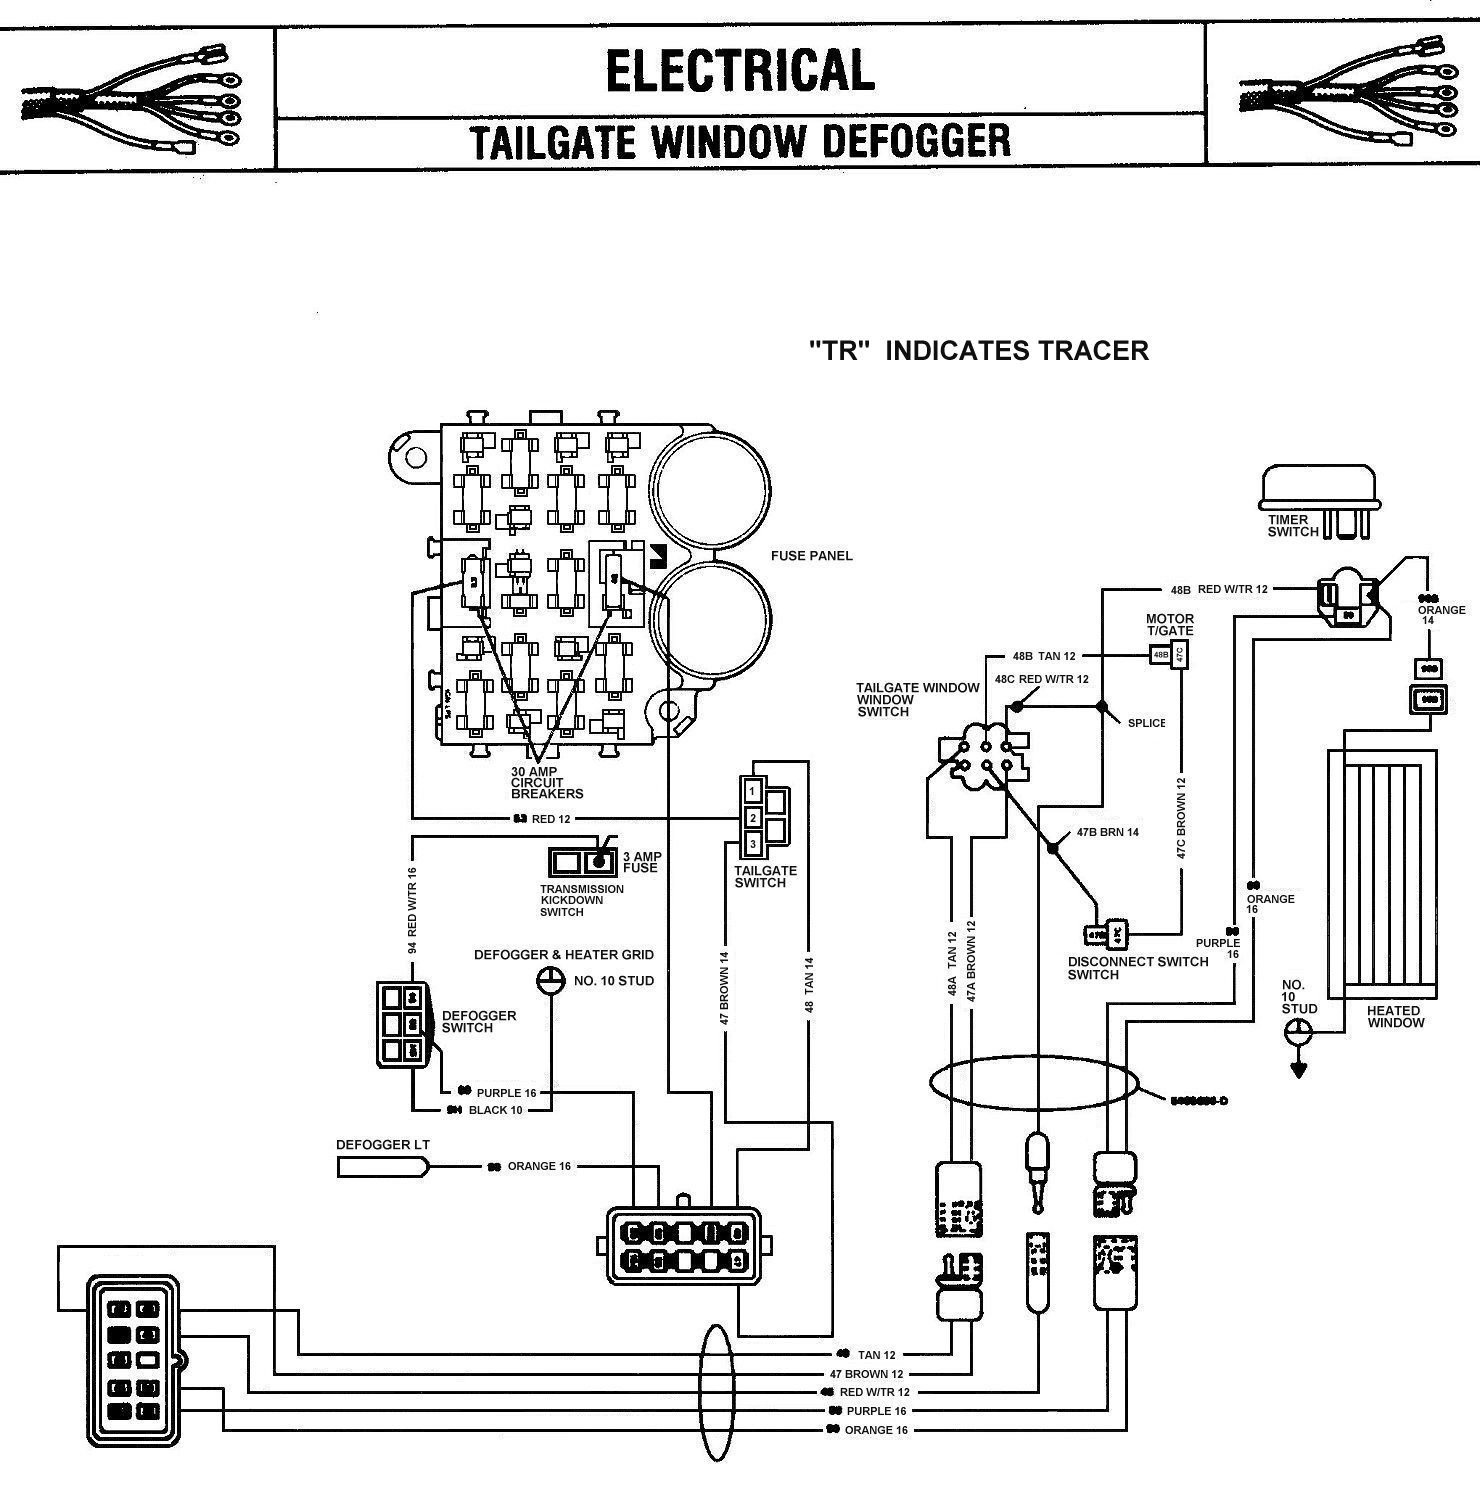 1967 jeep cherokee wiring diagram